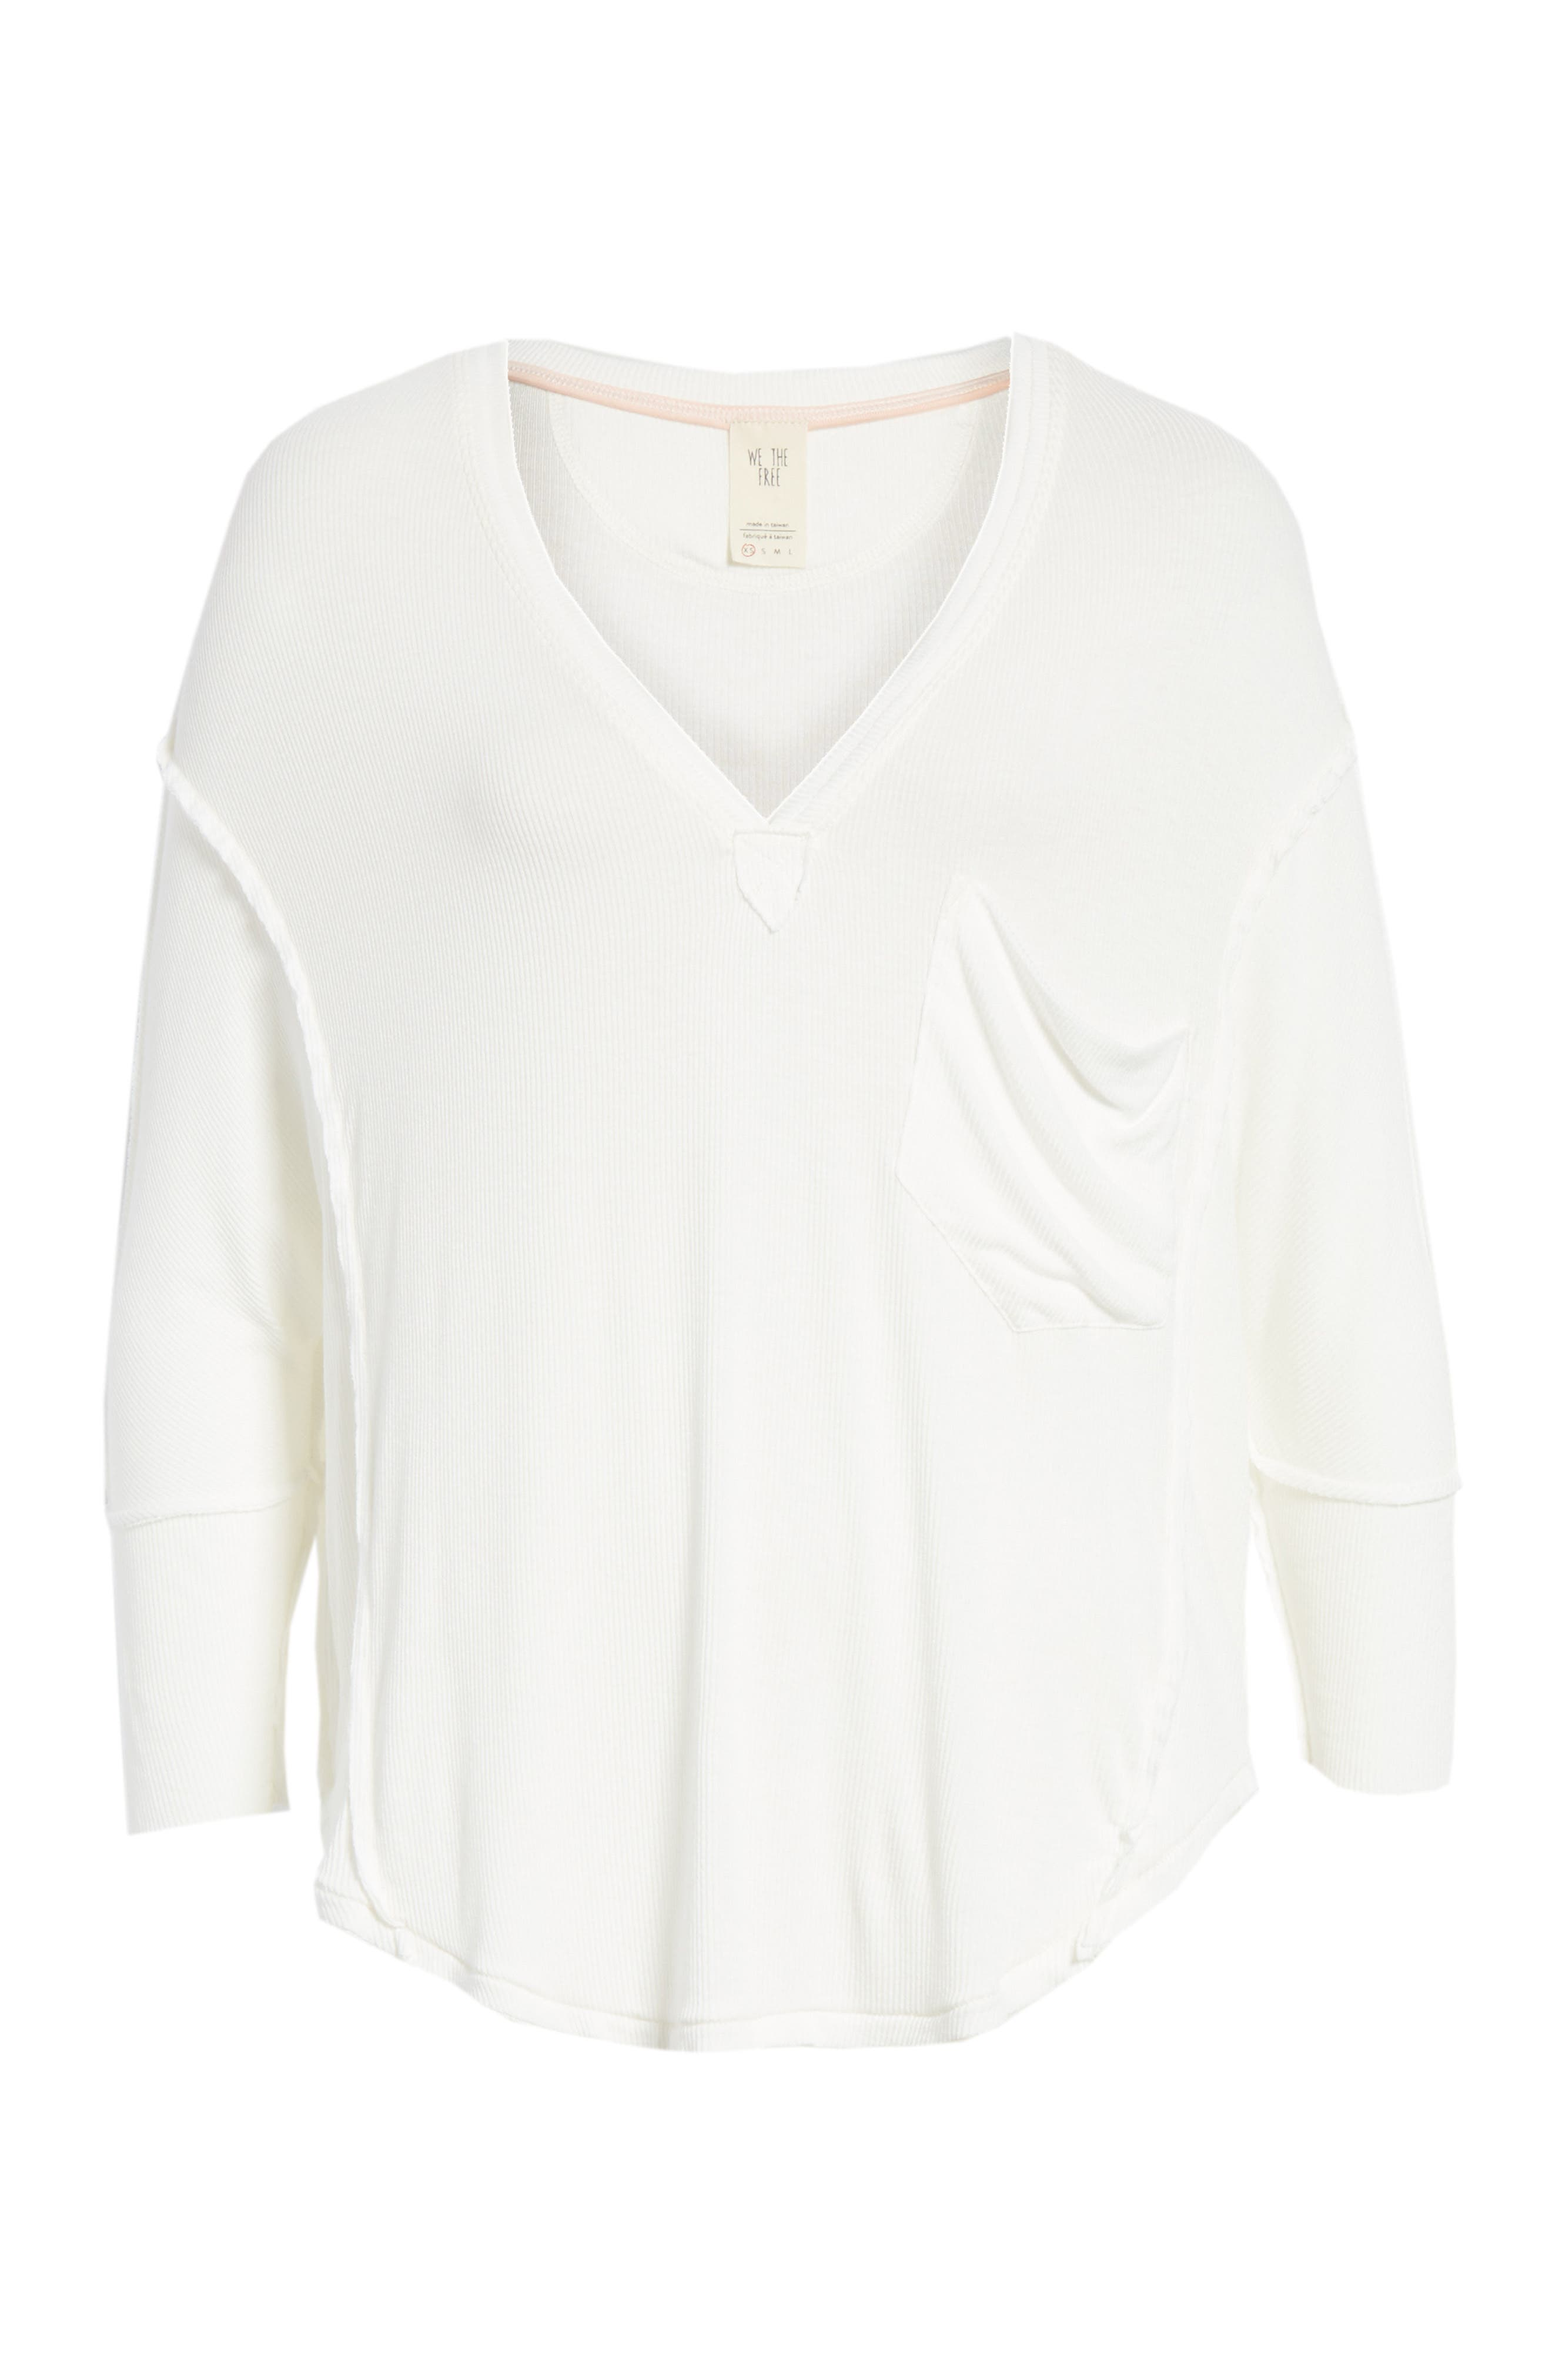 We the Free by Free People Golden Gate Tee,                             Alternate thumbnail 6, color,                             WHITE